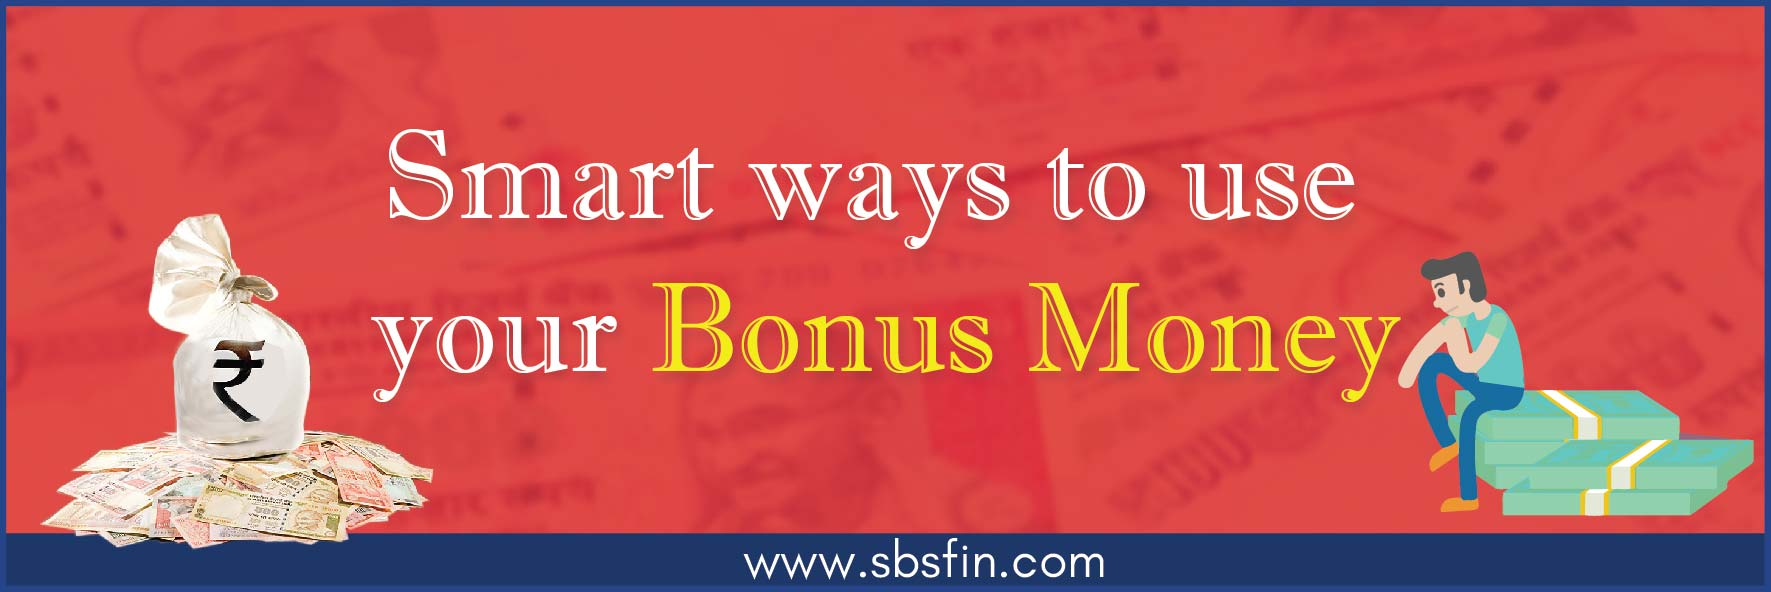 Smart ways to use your Bonus Money